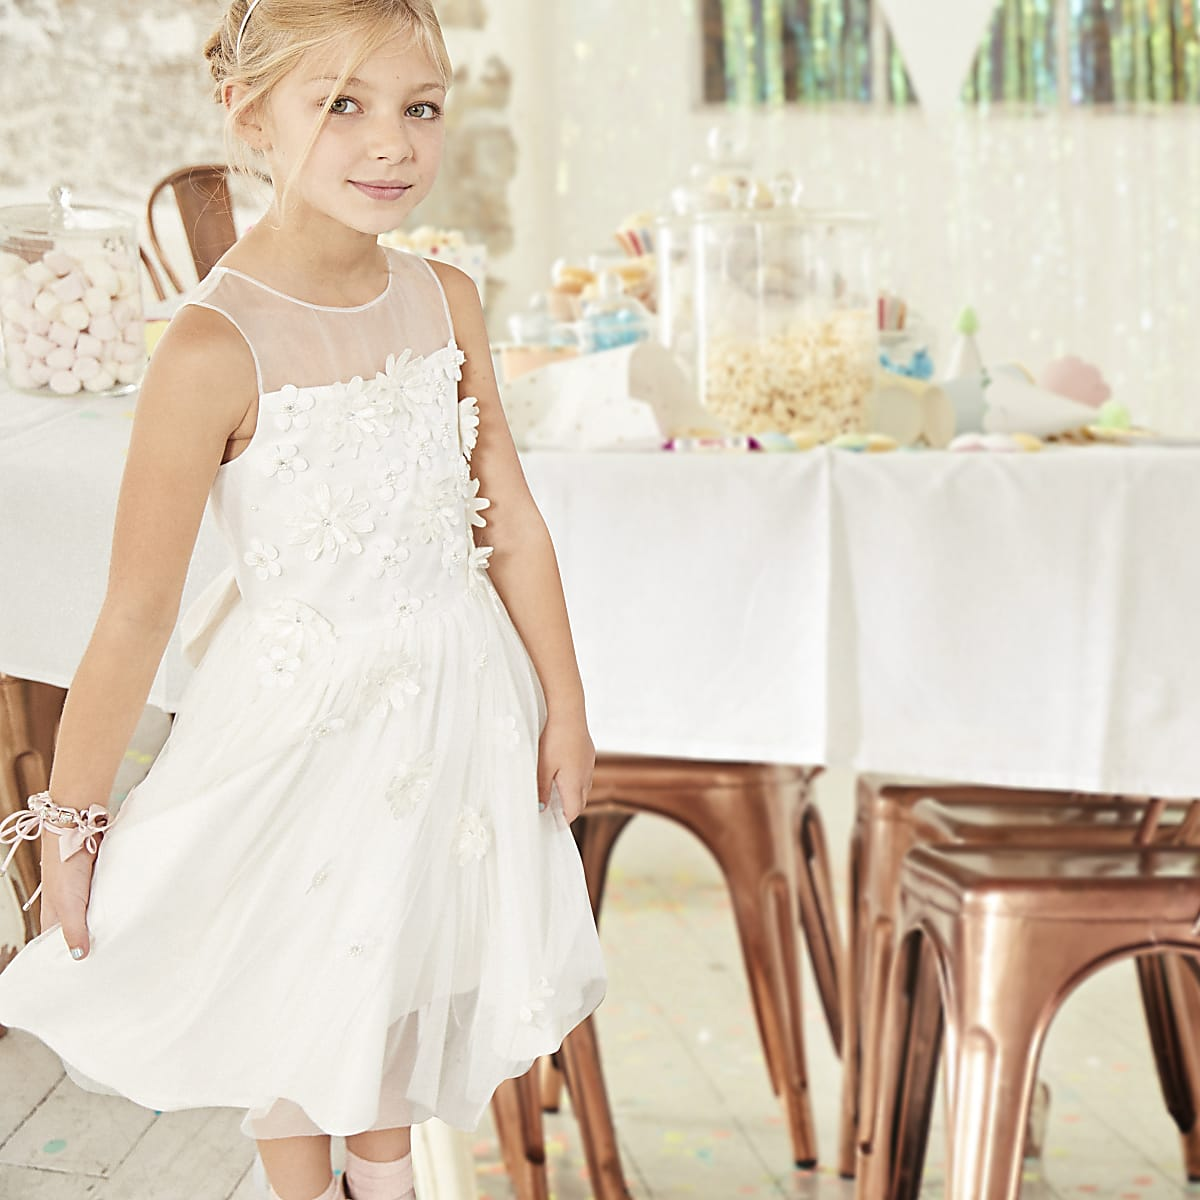 9a2d7383a85 Girls white tulle skirt flower girl dress - Party Dresses - Dresses - girls